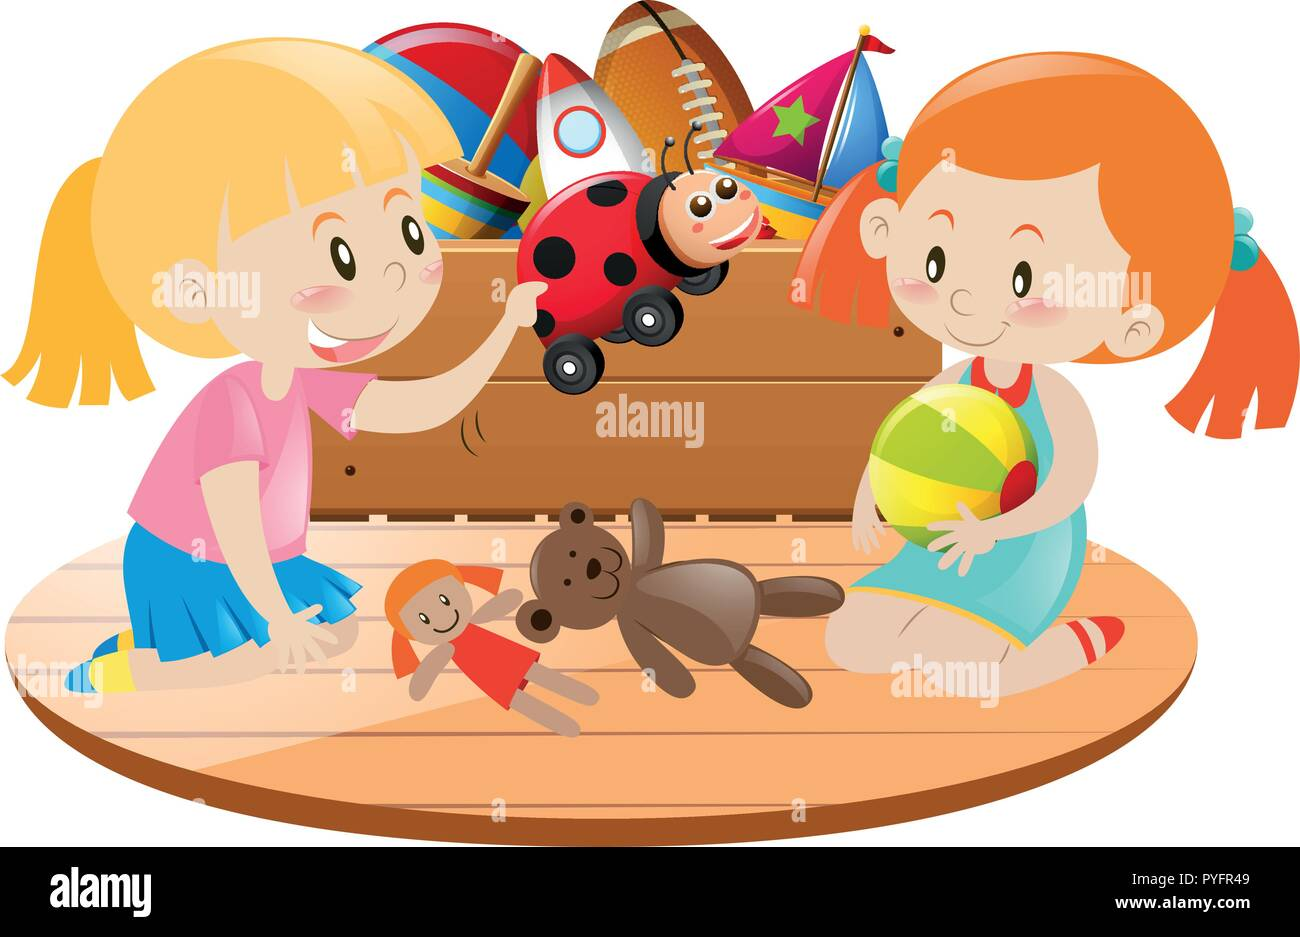 Two Girls Playing With Toys In Room Illustration Stock Vector Art